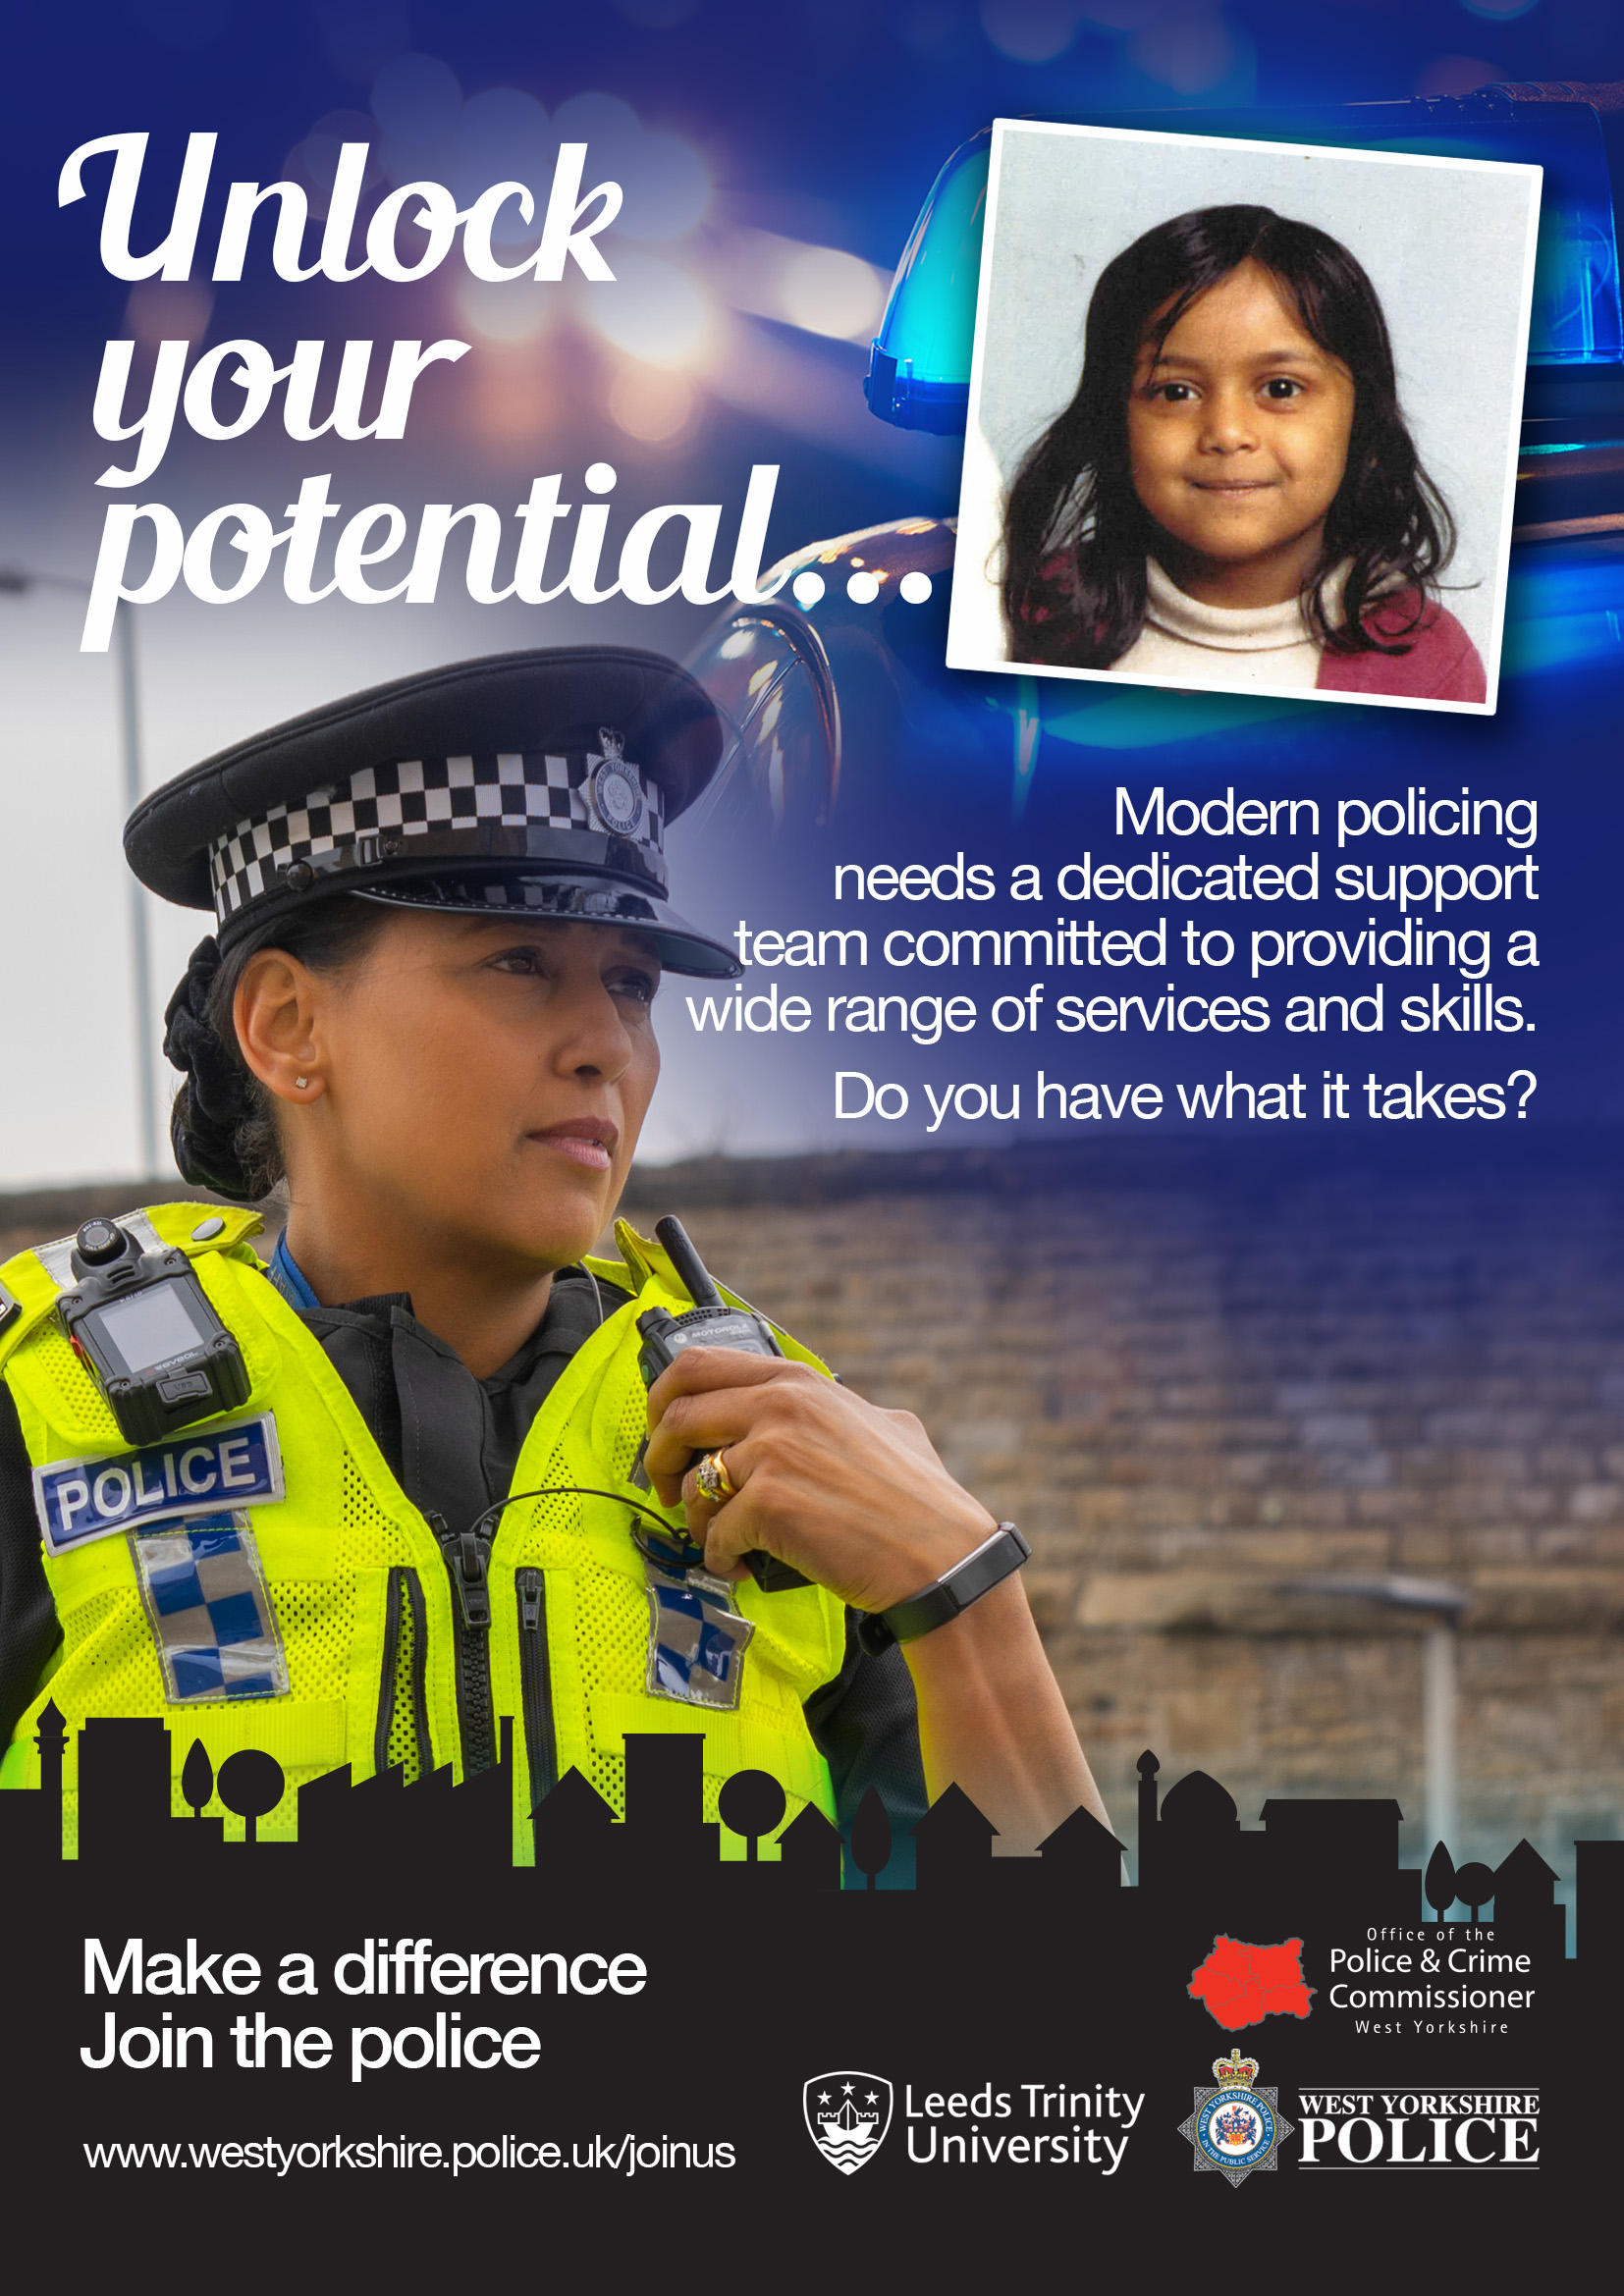 300 Police Officers to be Recruited by West Yorkshire Police